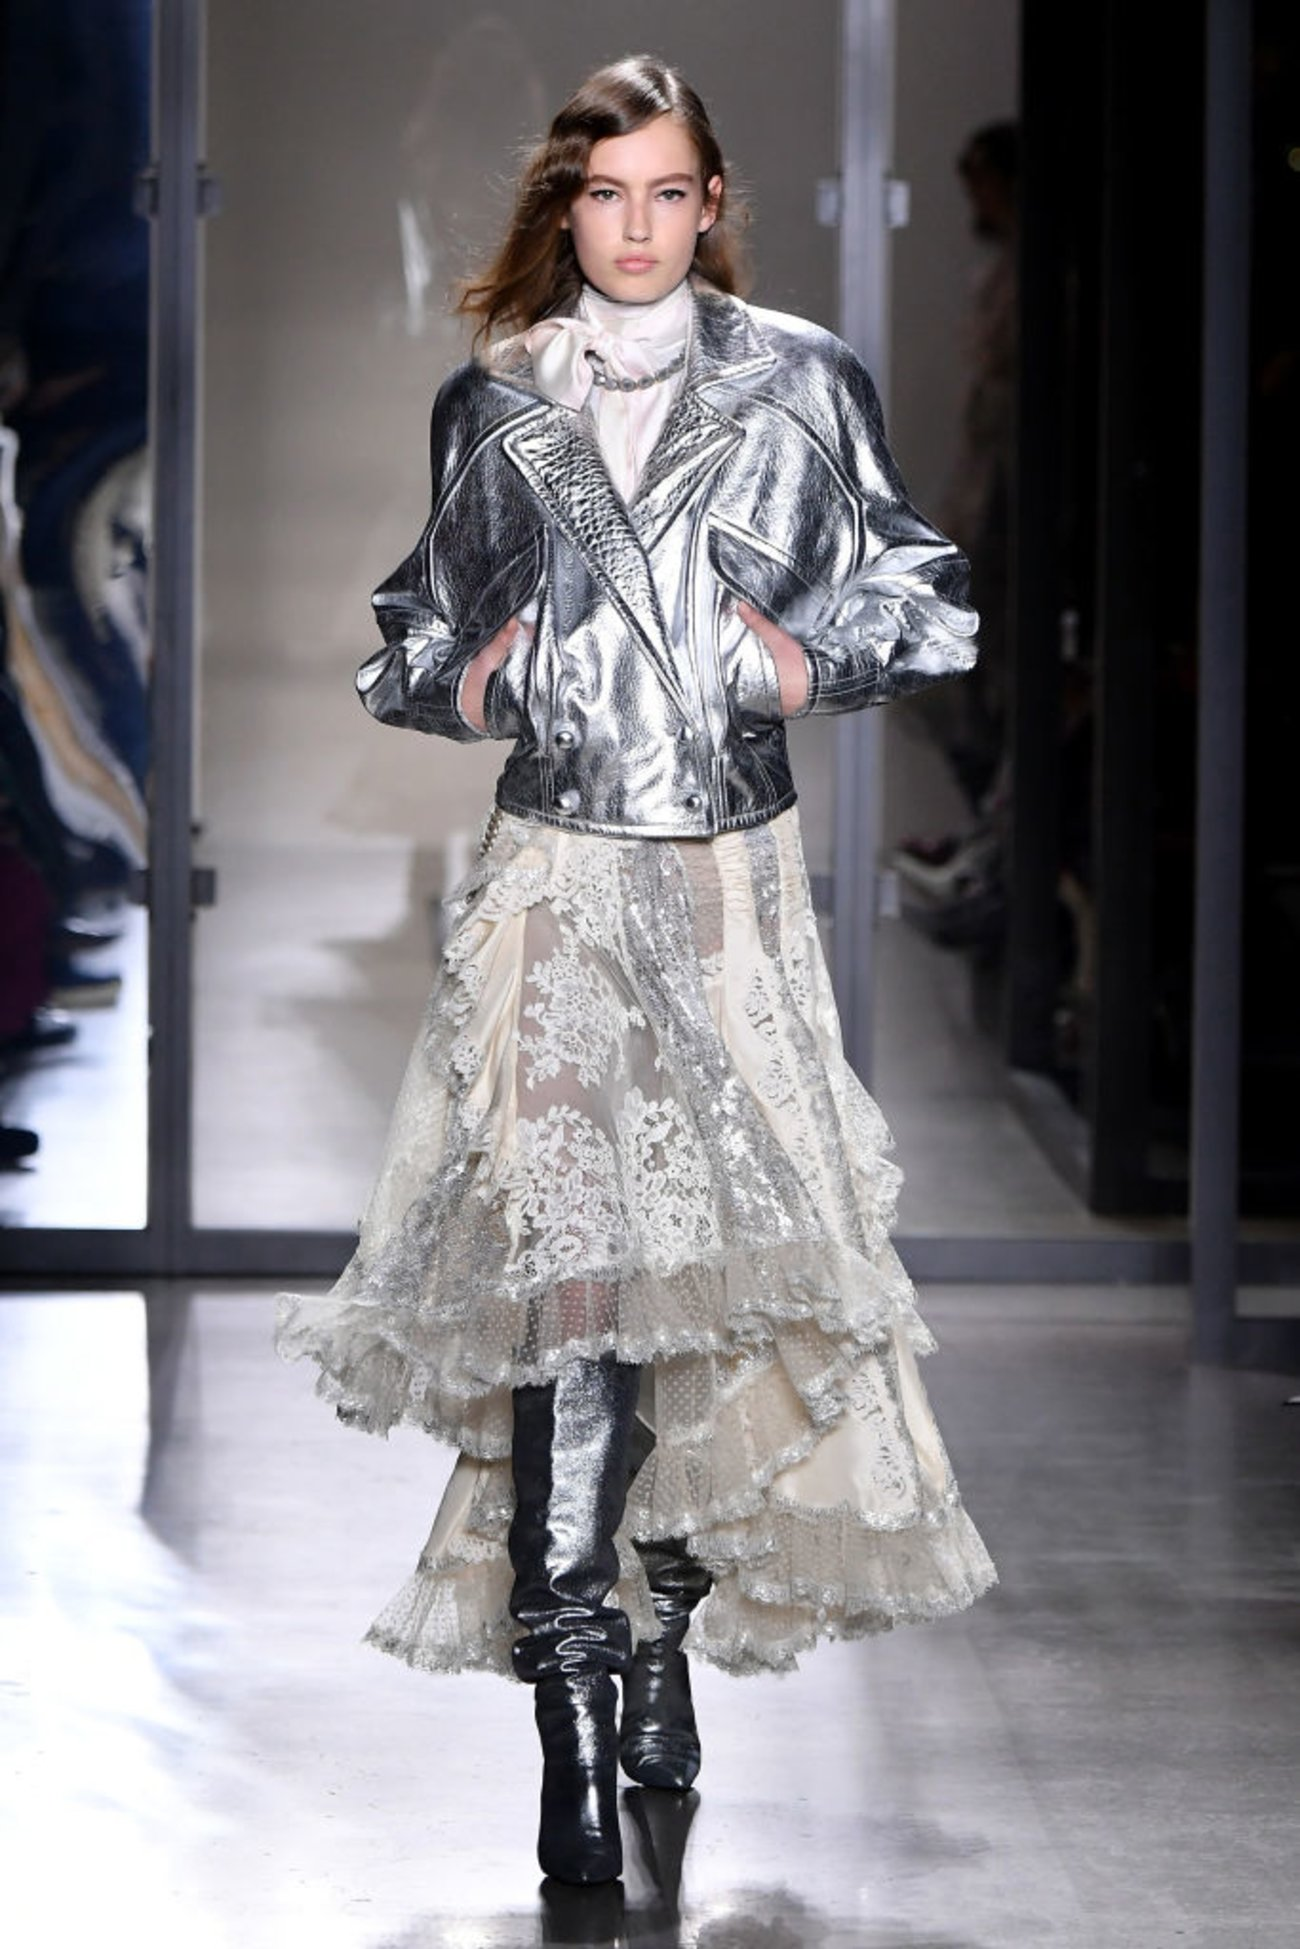 Model Fashion Week Metallic Jacke